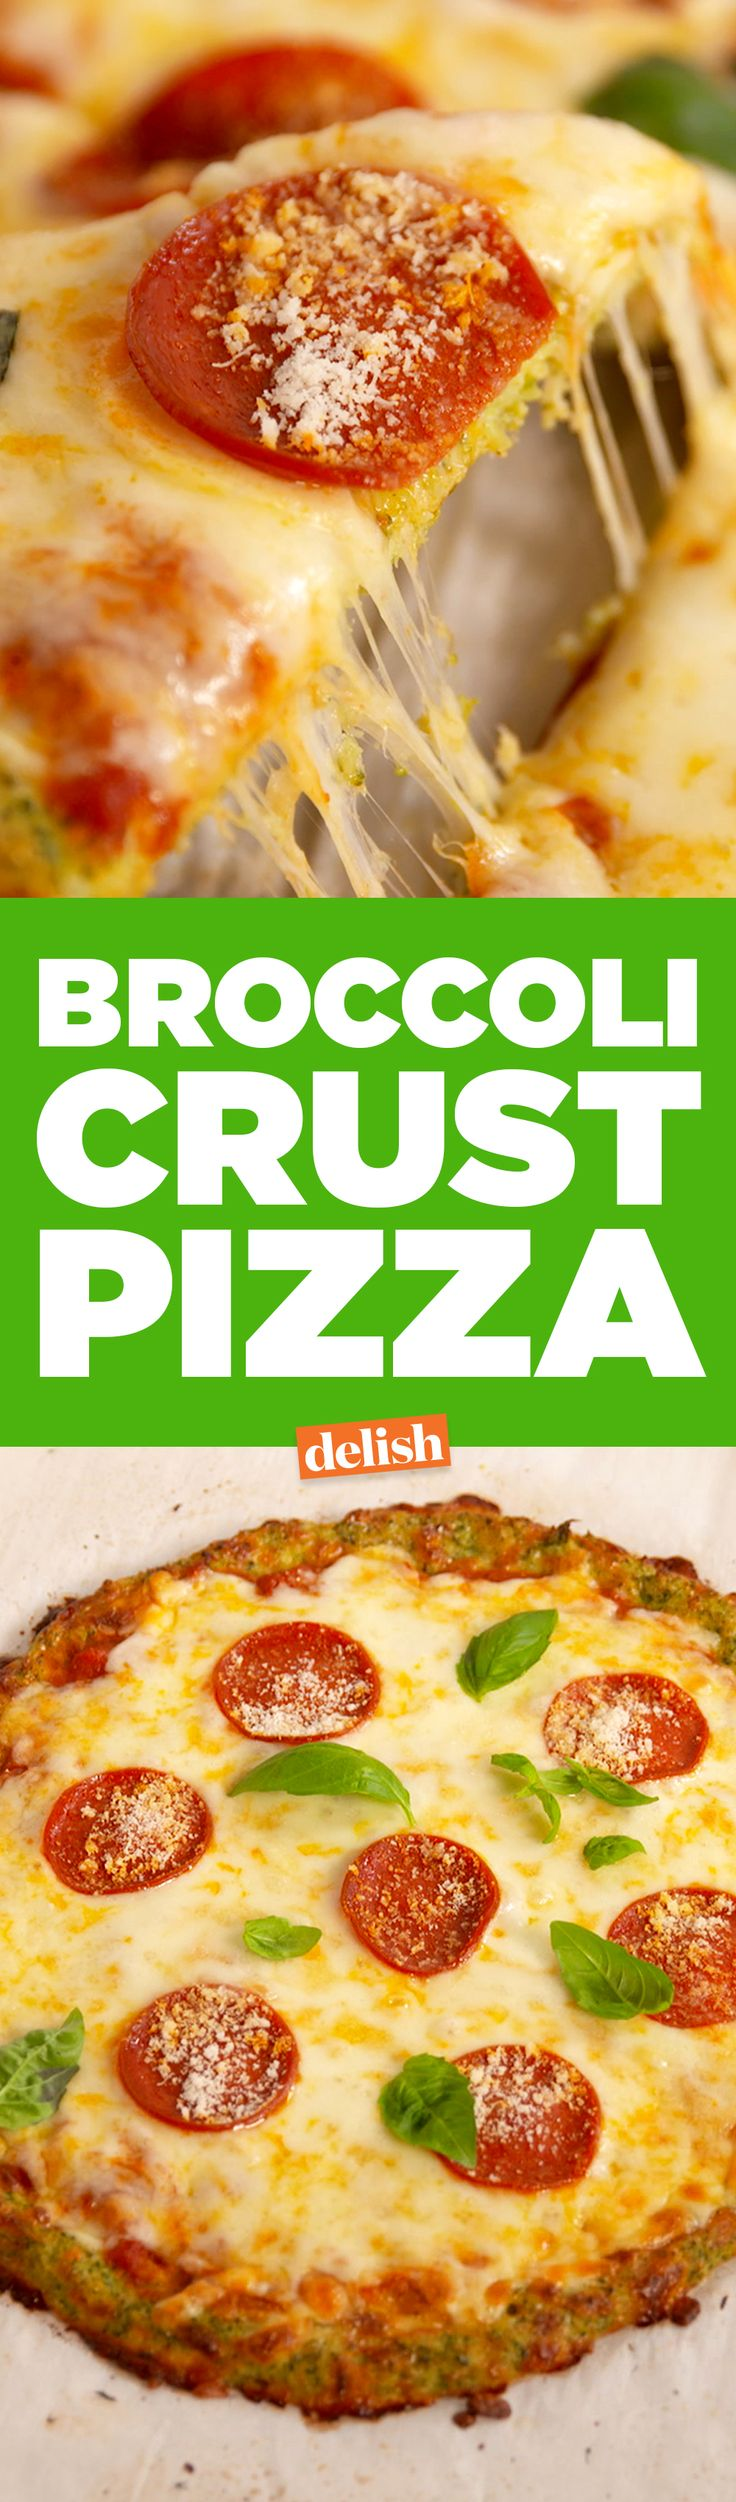 Good news: this Broccoli Crust Pizza is fair game on your diet. Get the recipe from Delish.com.